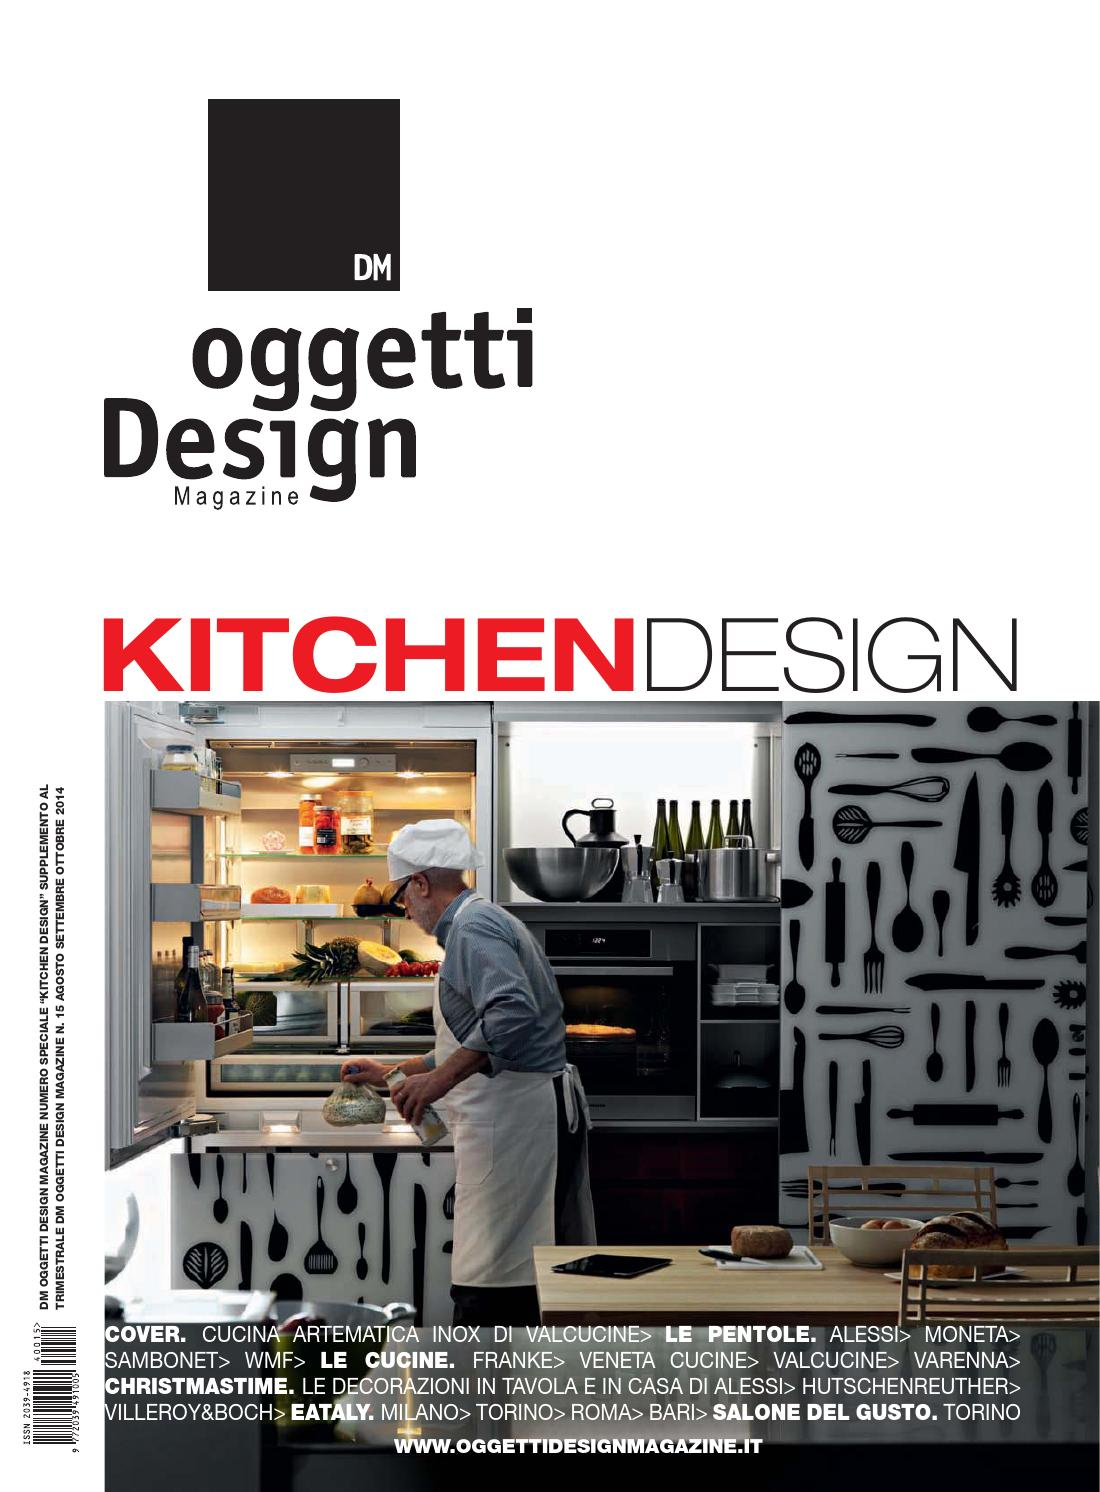 Corsi Cucina Bambini Eataly Milano Dm15 Kitchen Design By Board Tv Johnson Web Srl Issuu